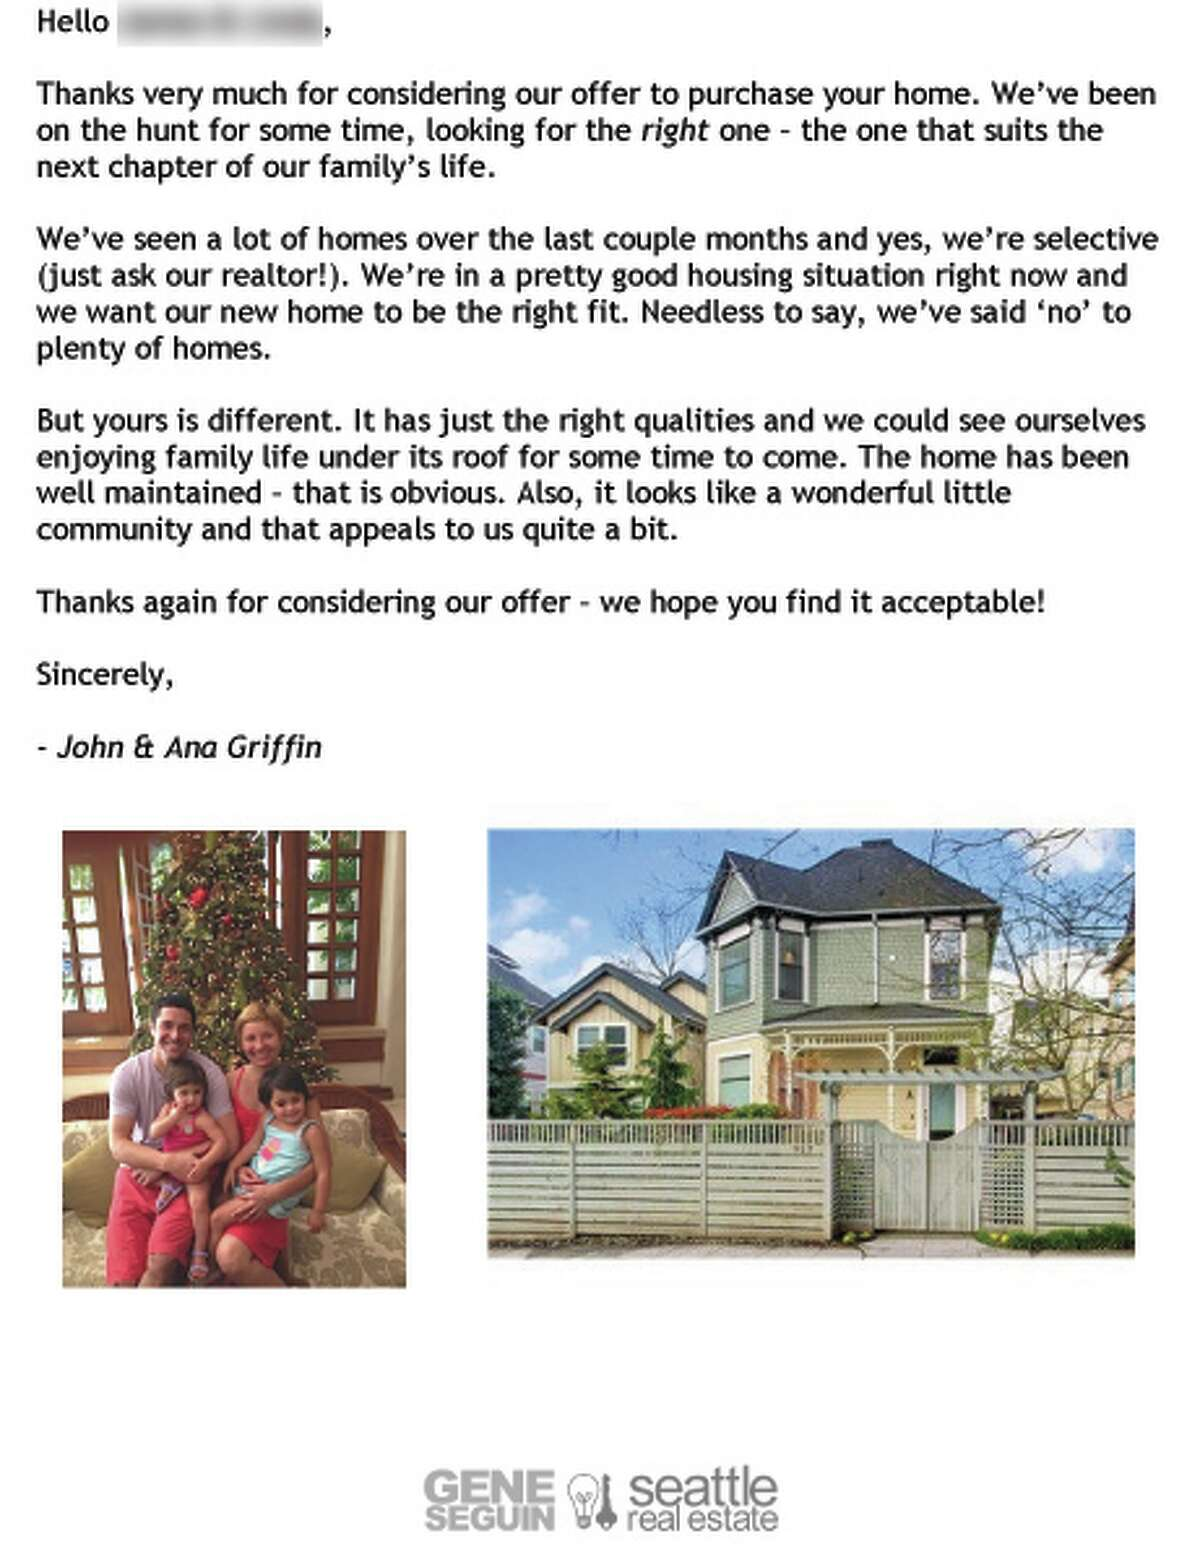 John and Ana Griffin buyer letter.